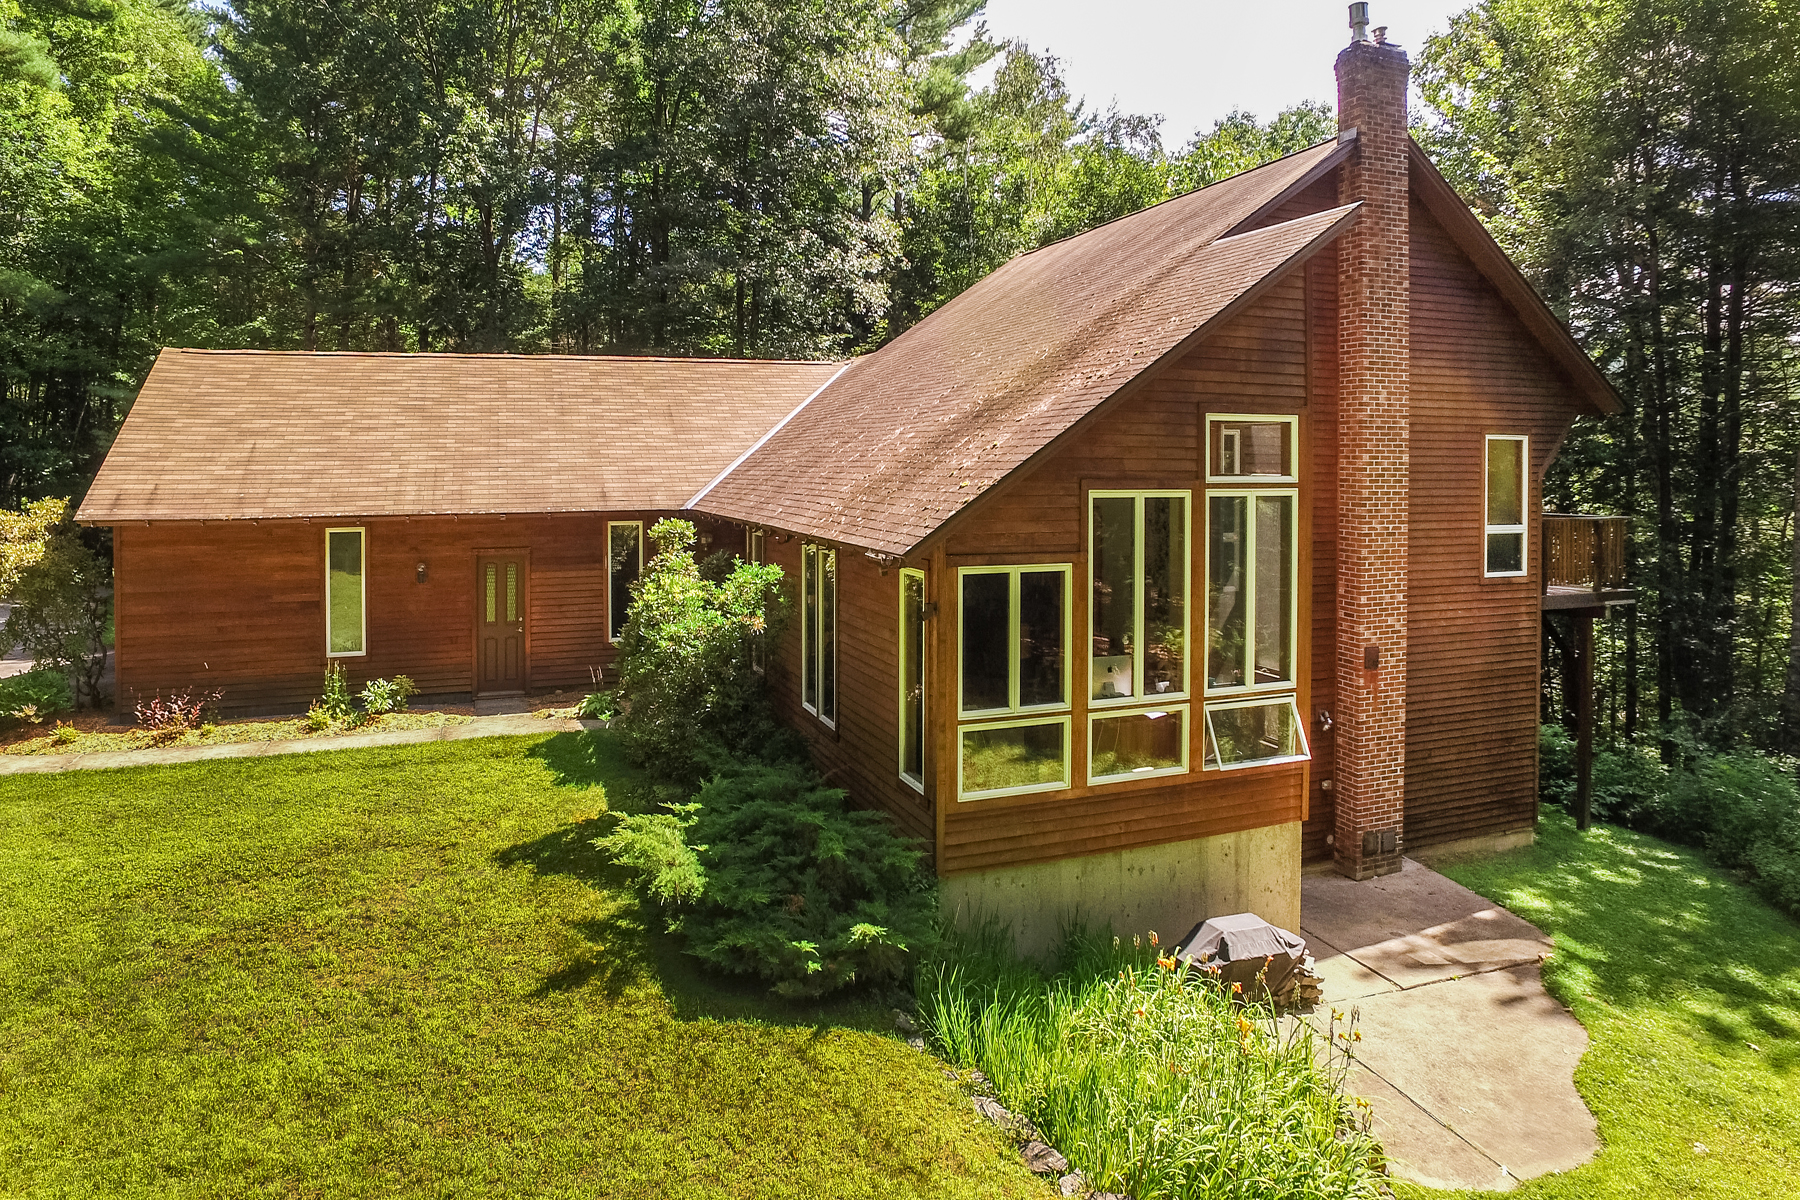 Single Family Homes for Sale at RUTLAND TOWN CONTEMPORARY 651 Colonial Dr Rutland Town, Vermont 05701 United States